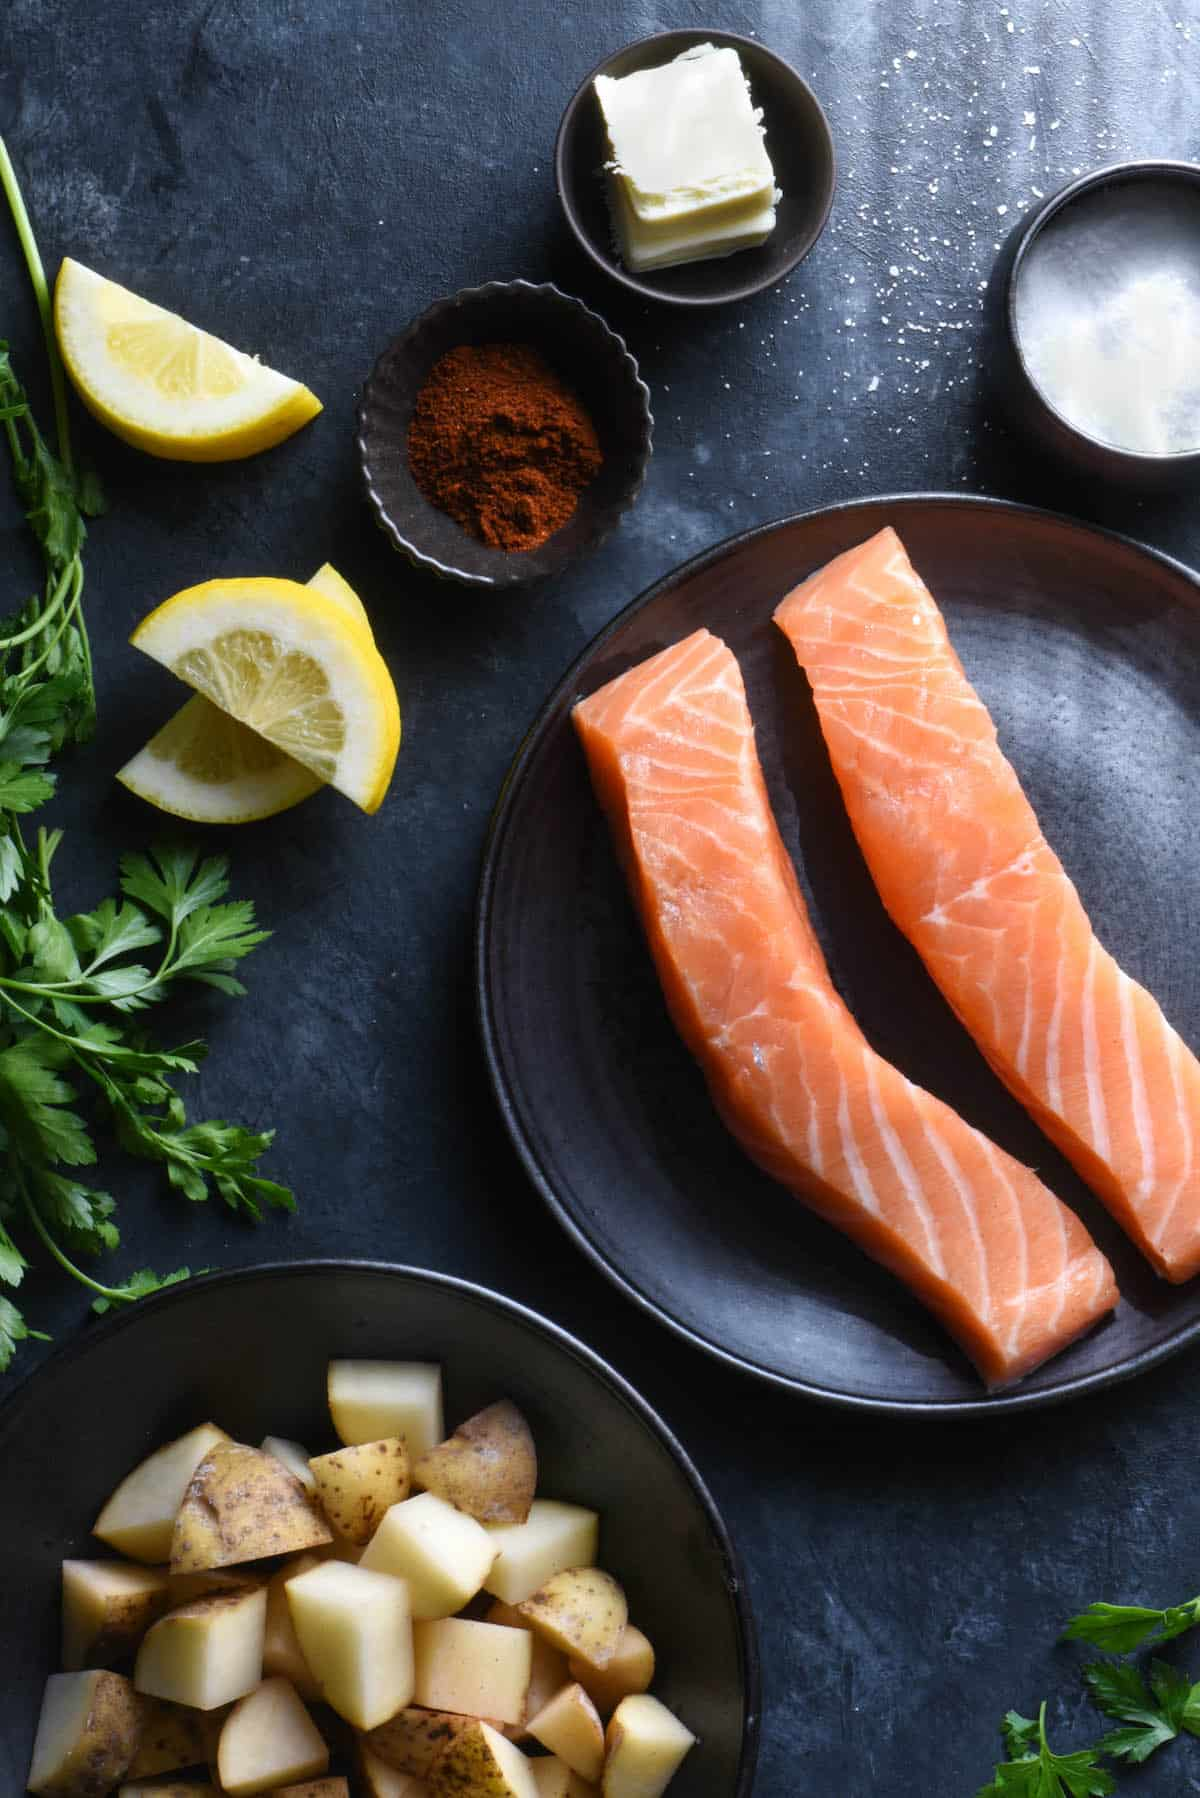 Dark background topped with ingredients: salmon fillets, raw chopped potatoes, parsley, lemon wedges, spices and butter.